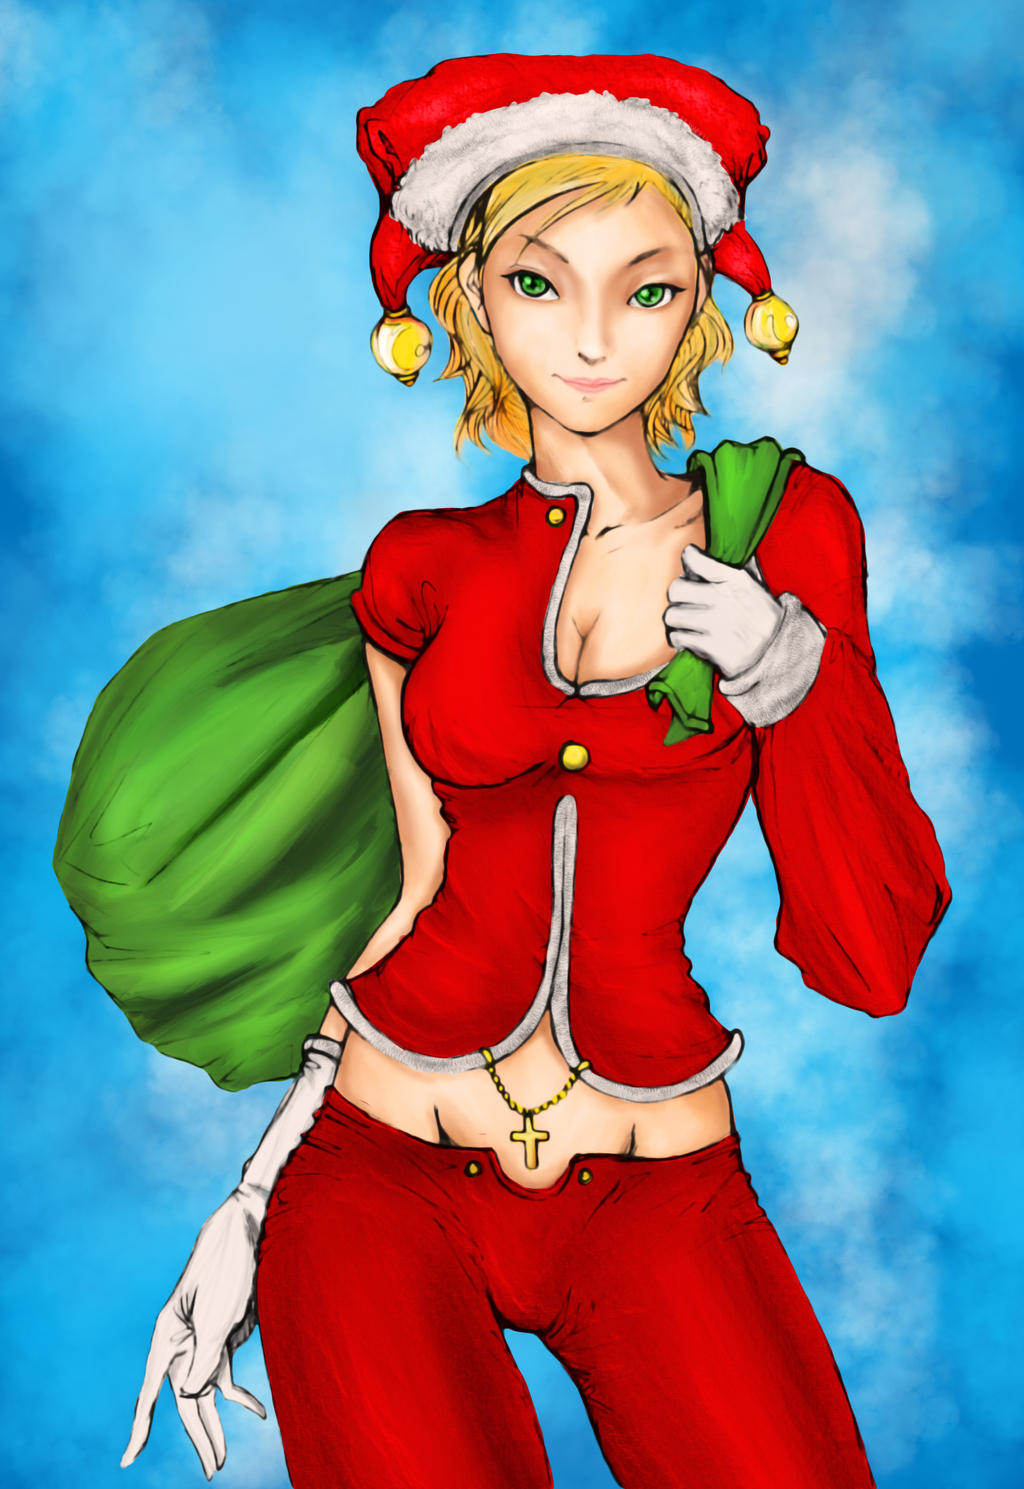 Pepper Christmas colors by julianx16